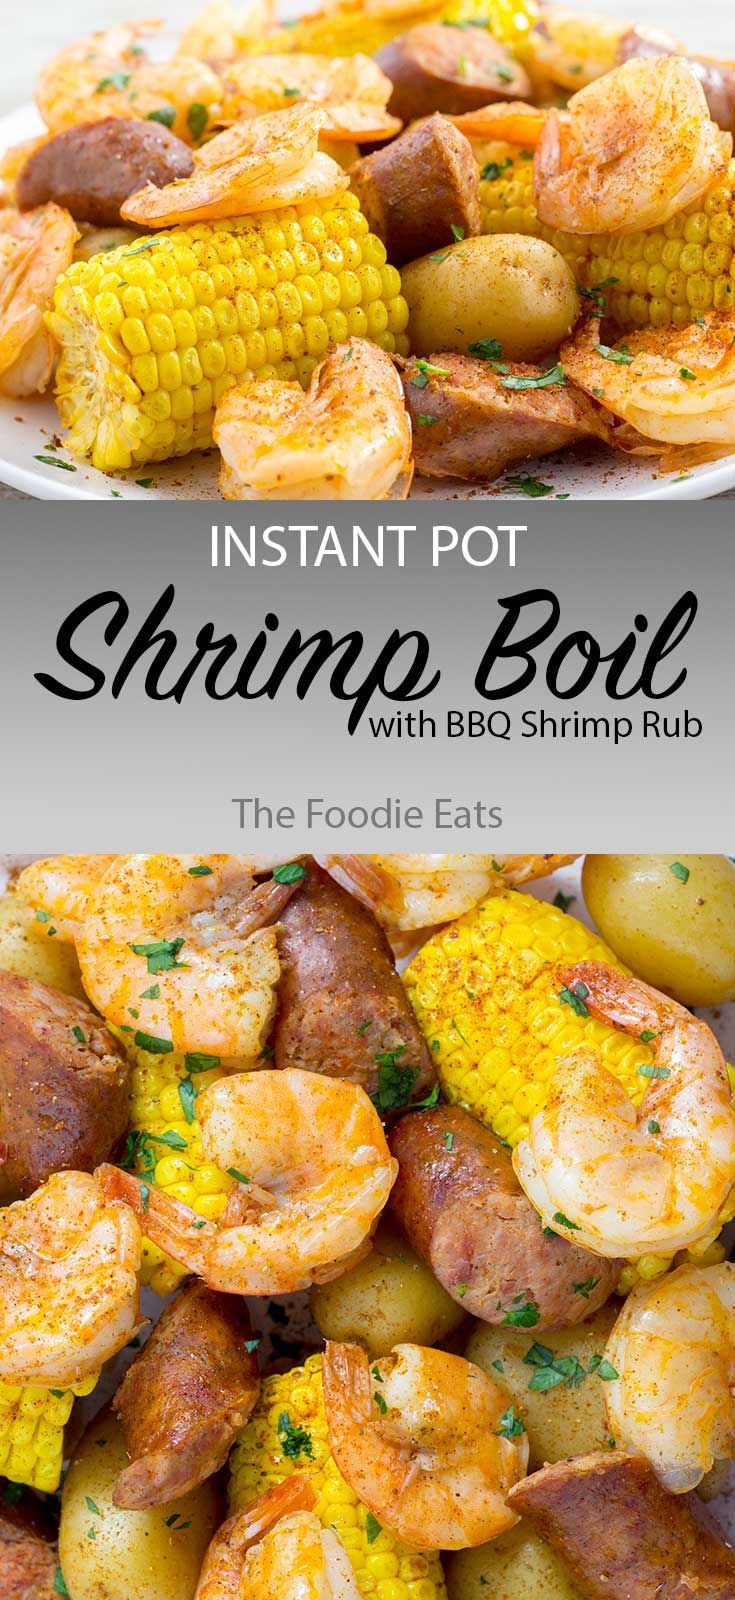 Instant Pot Shrimp Boil with BBQ Shrimp Rub images